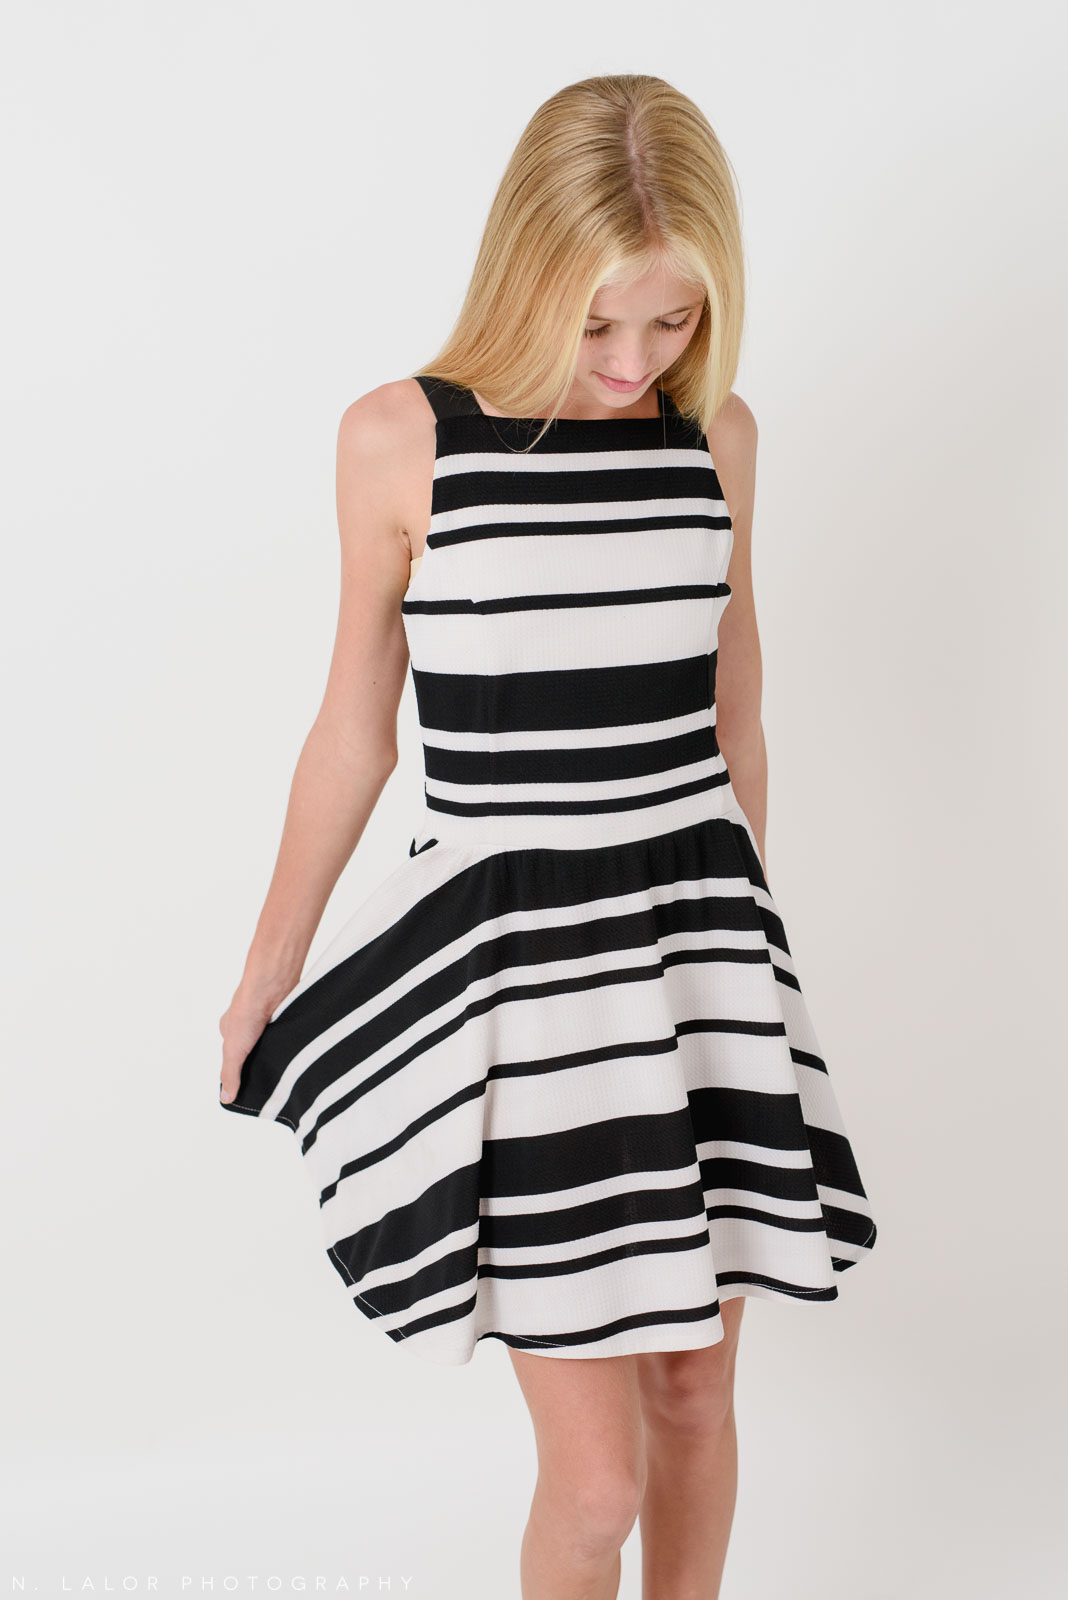 Black and white striped dress. Stella M'Lia tween fashion photoshoot with N. Lalor Photography in Greenwich, Connecticut.